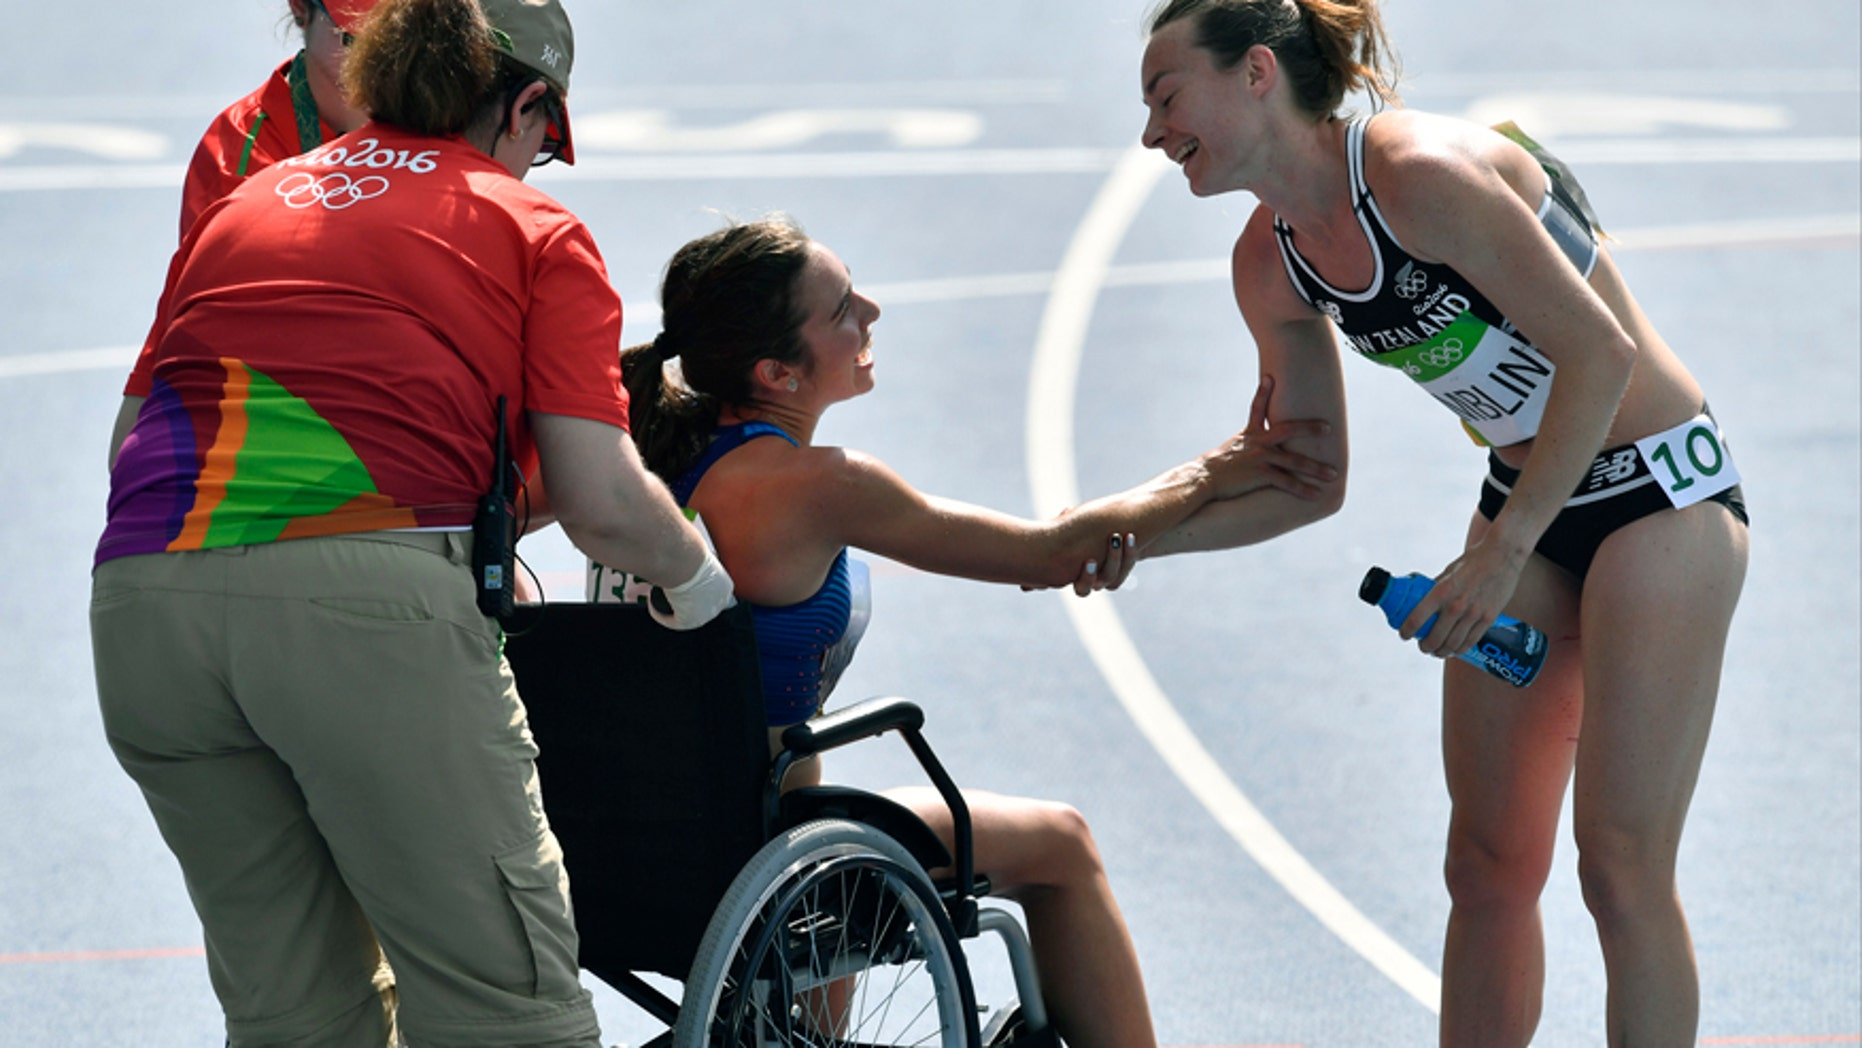 New Zealand's Nikki Hamblin greets the United States' Abbey D'Agostino, left, as she is helped from the track.